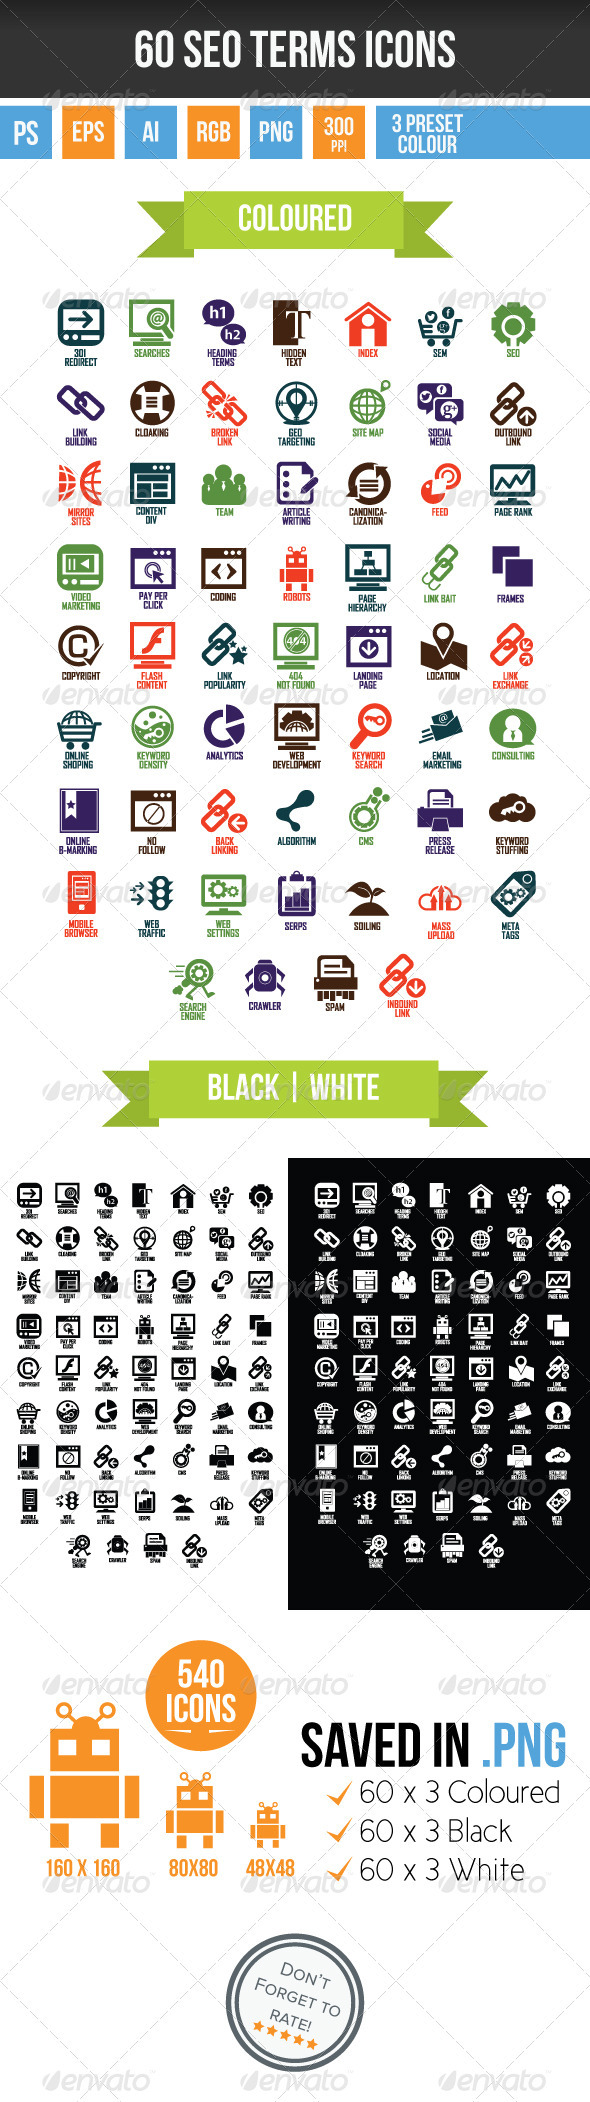 GraphicRiver 60 SEO Terms Icons 3837400